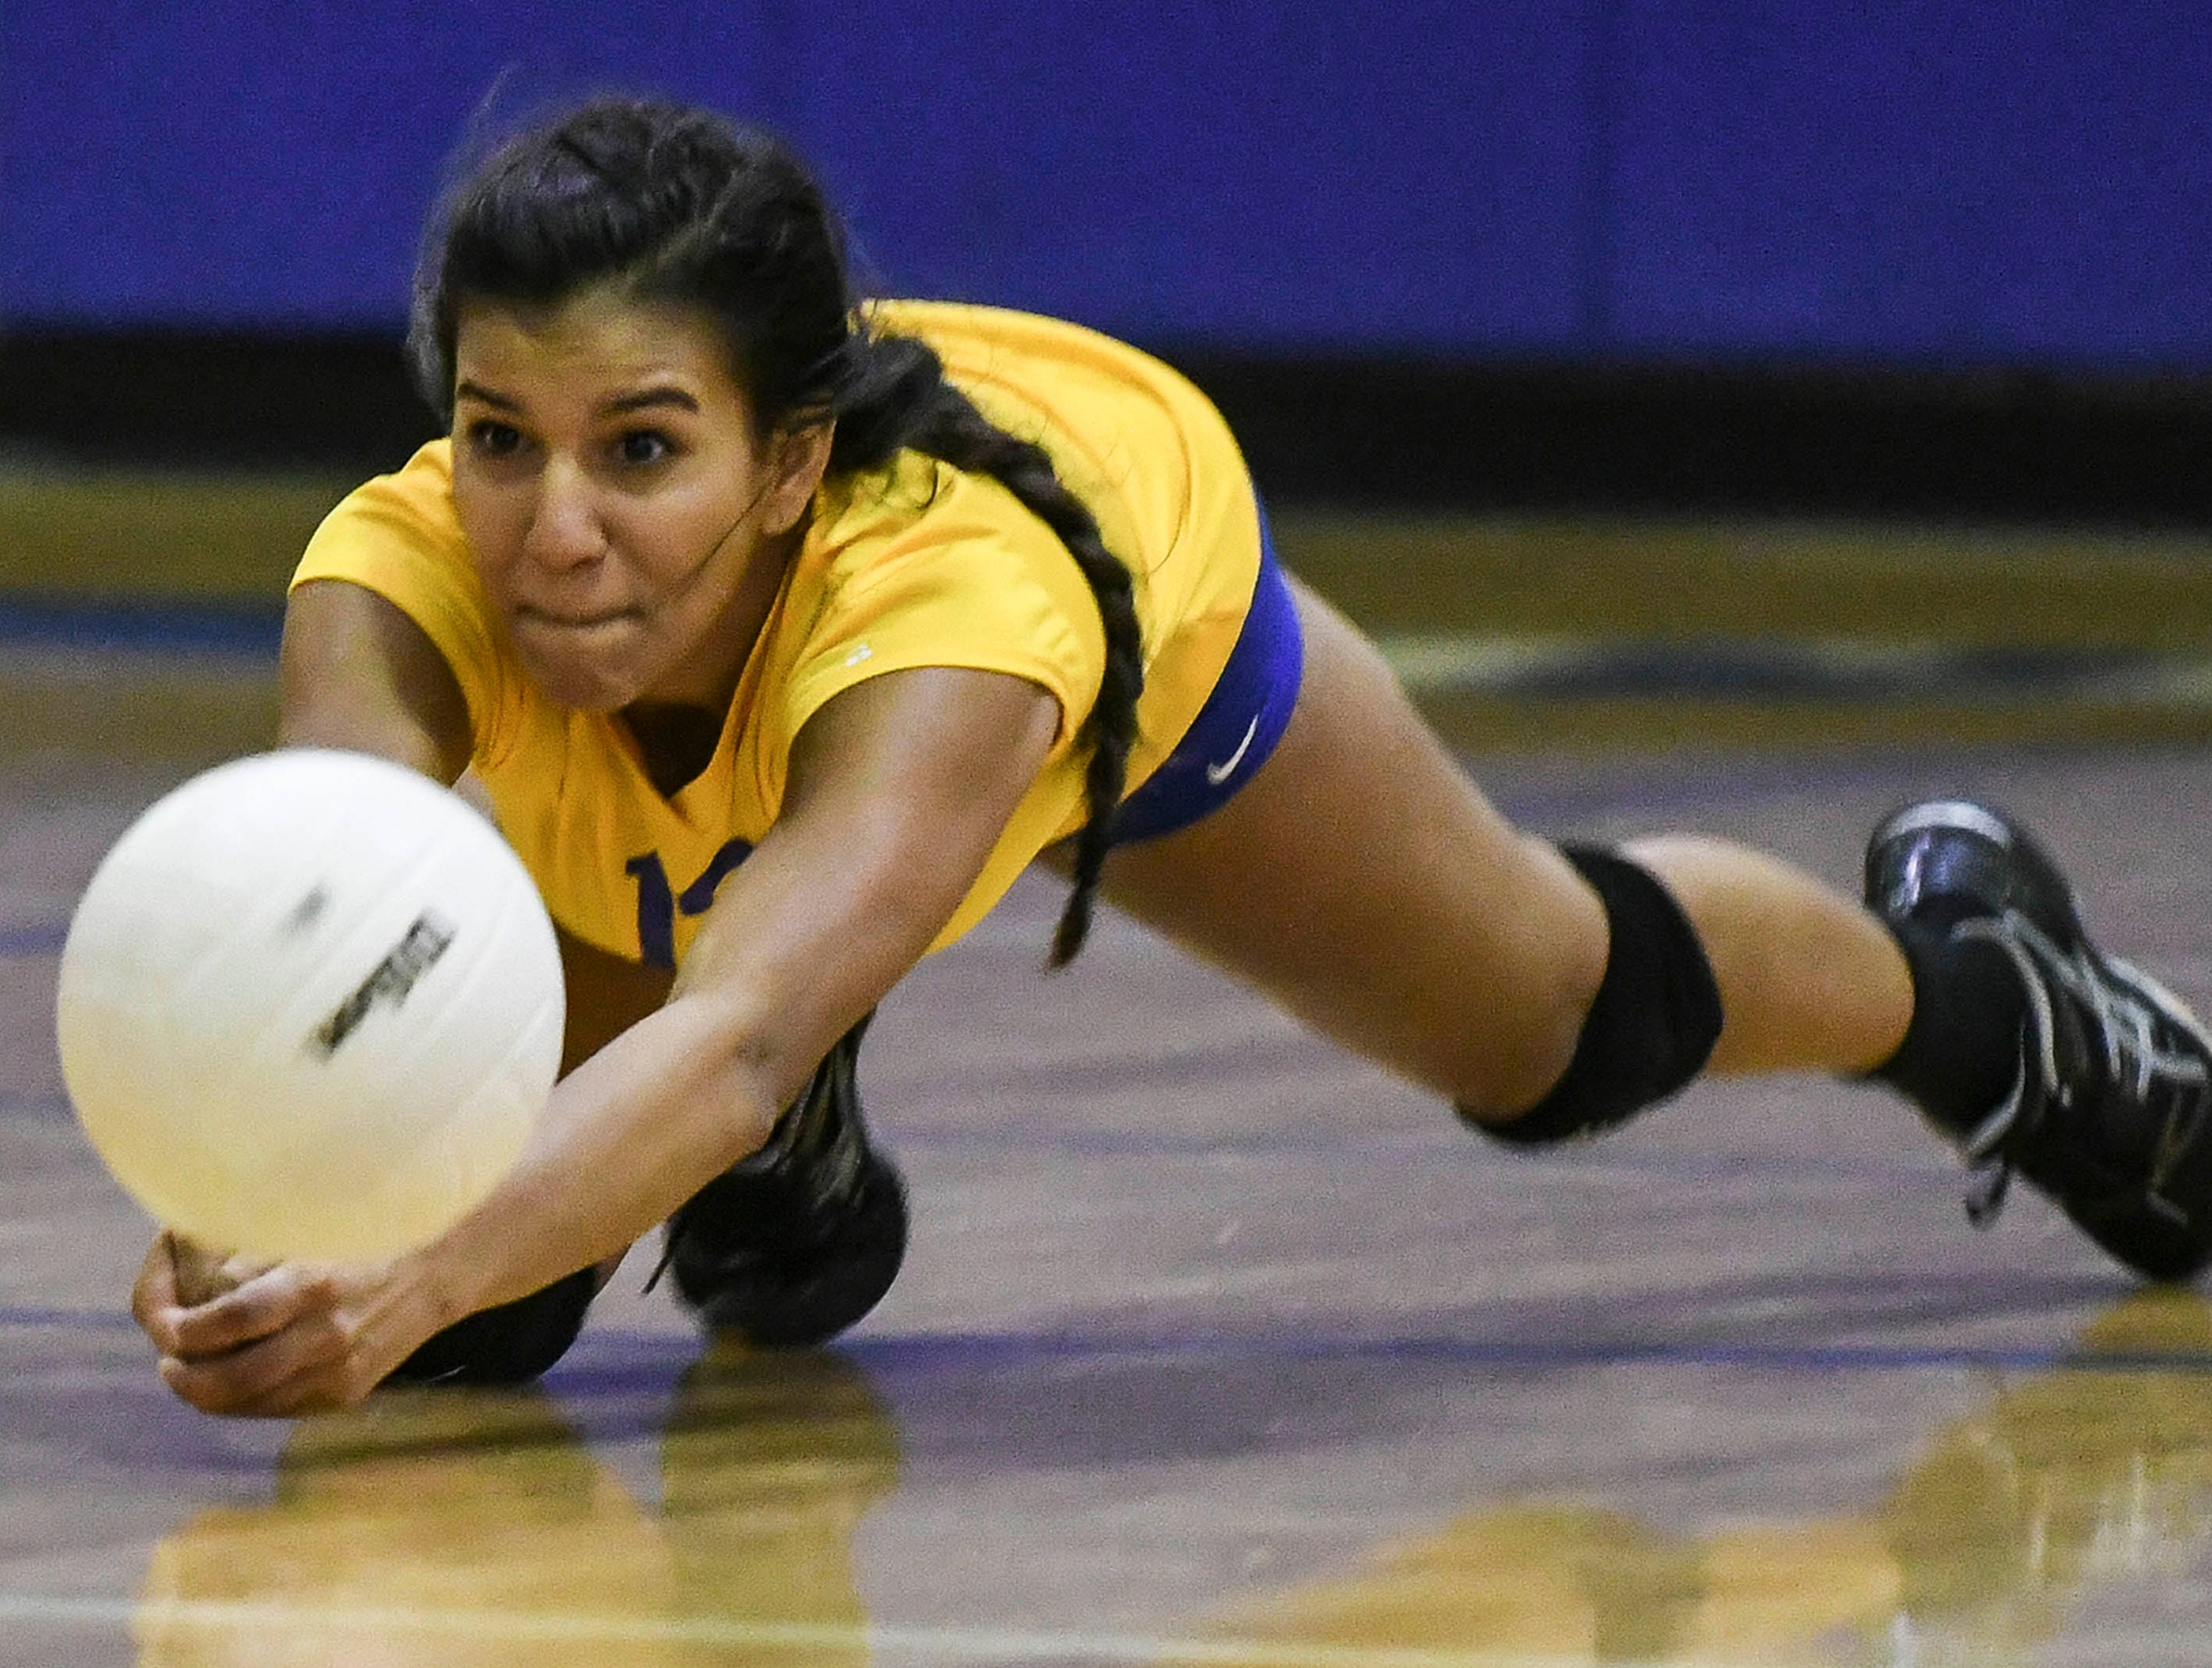 Christy Cavallero of Titusville dives for a ball during their match against Melbourne Tuesday.